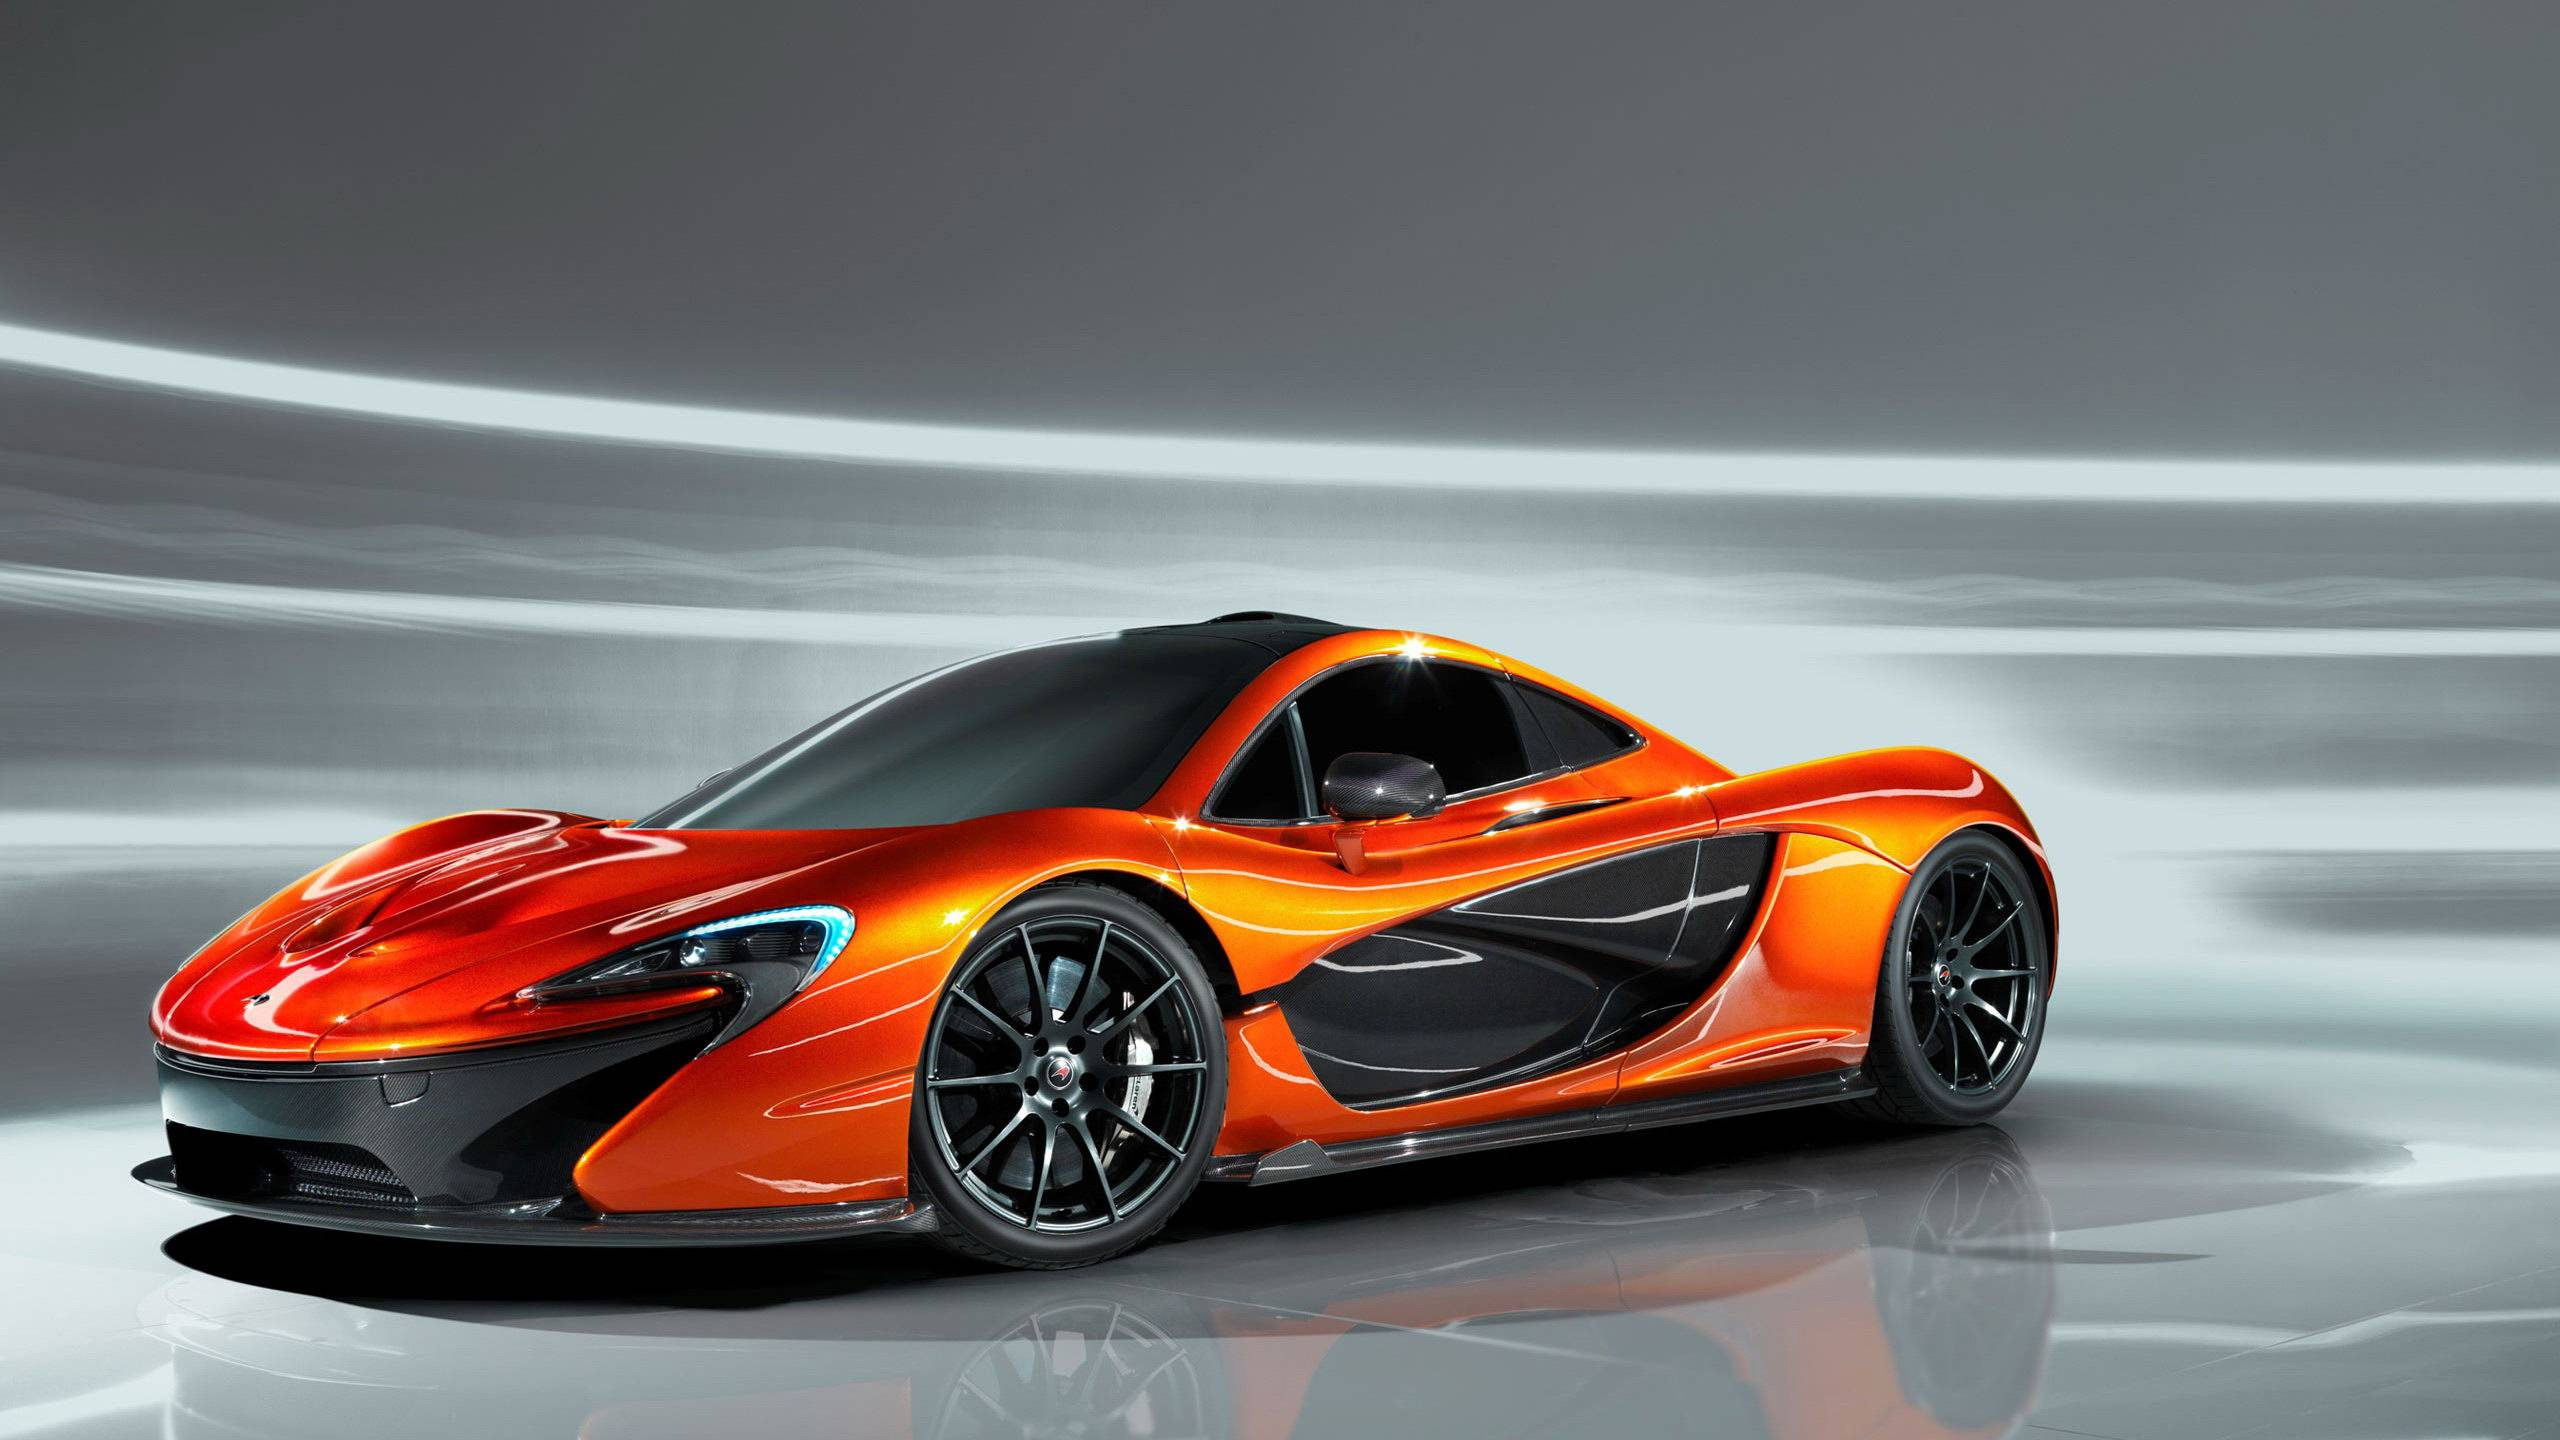 2560x1440 Car Wallpapers Top Free 2560x1440 Car Backgrounds Wallpaperaccess